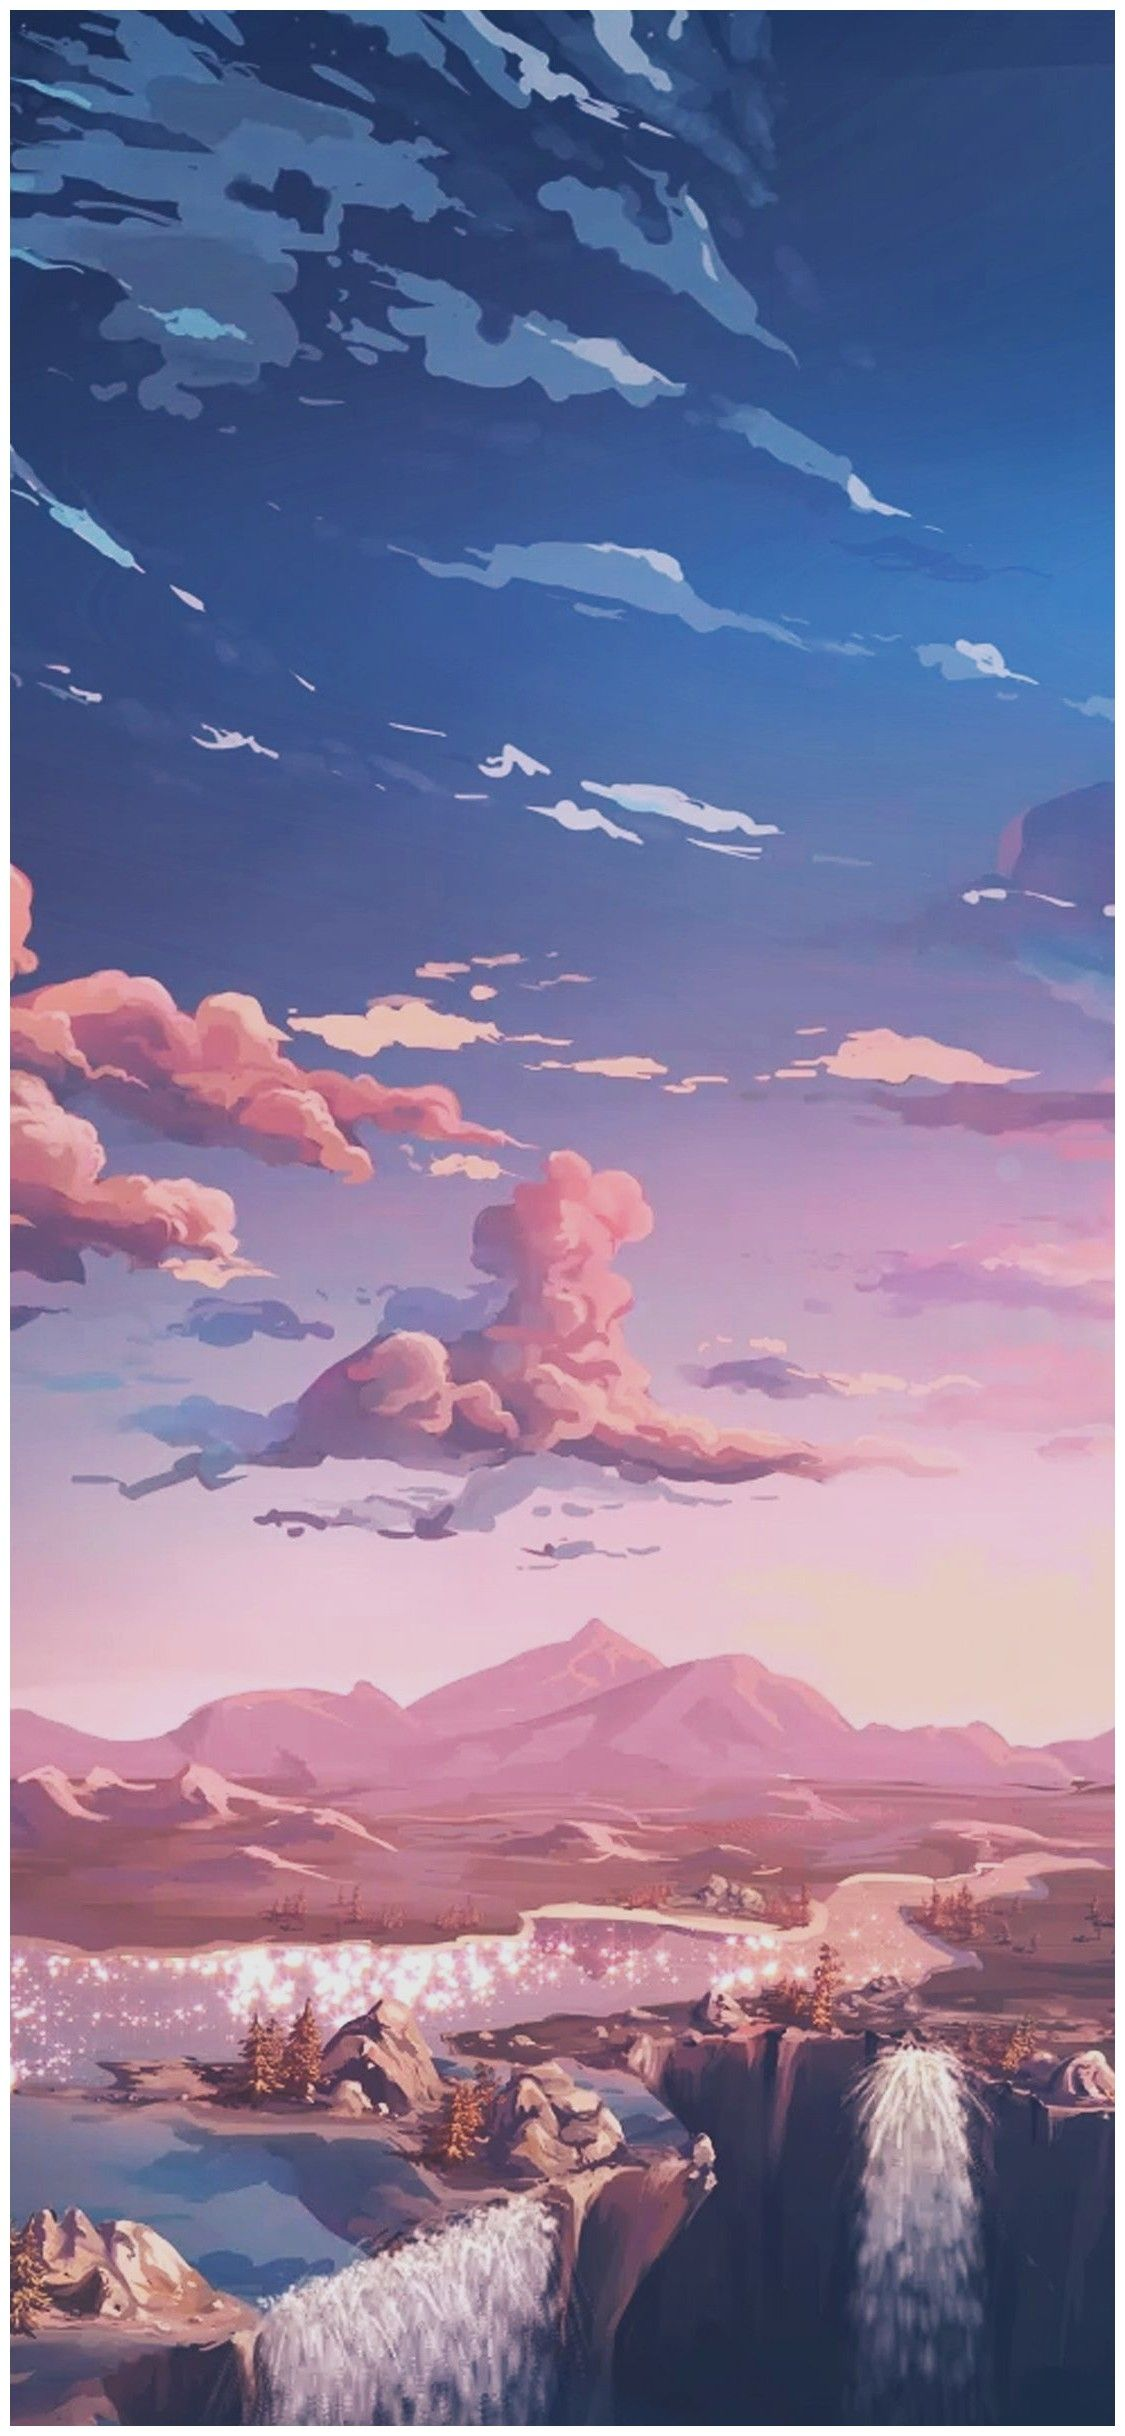 Aesthetic Pink Anime Wallpapers   Top Aesthetic Pink Anime 1125x2436